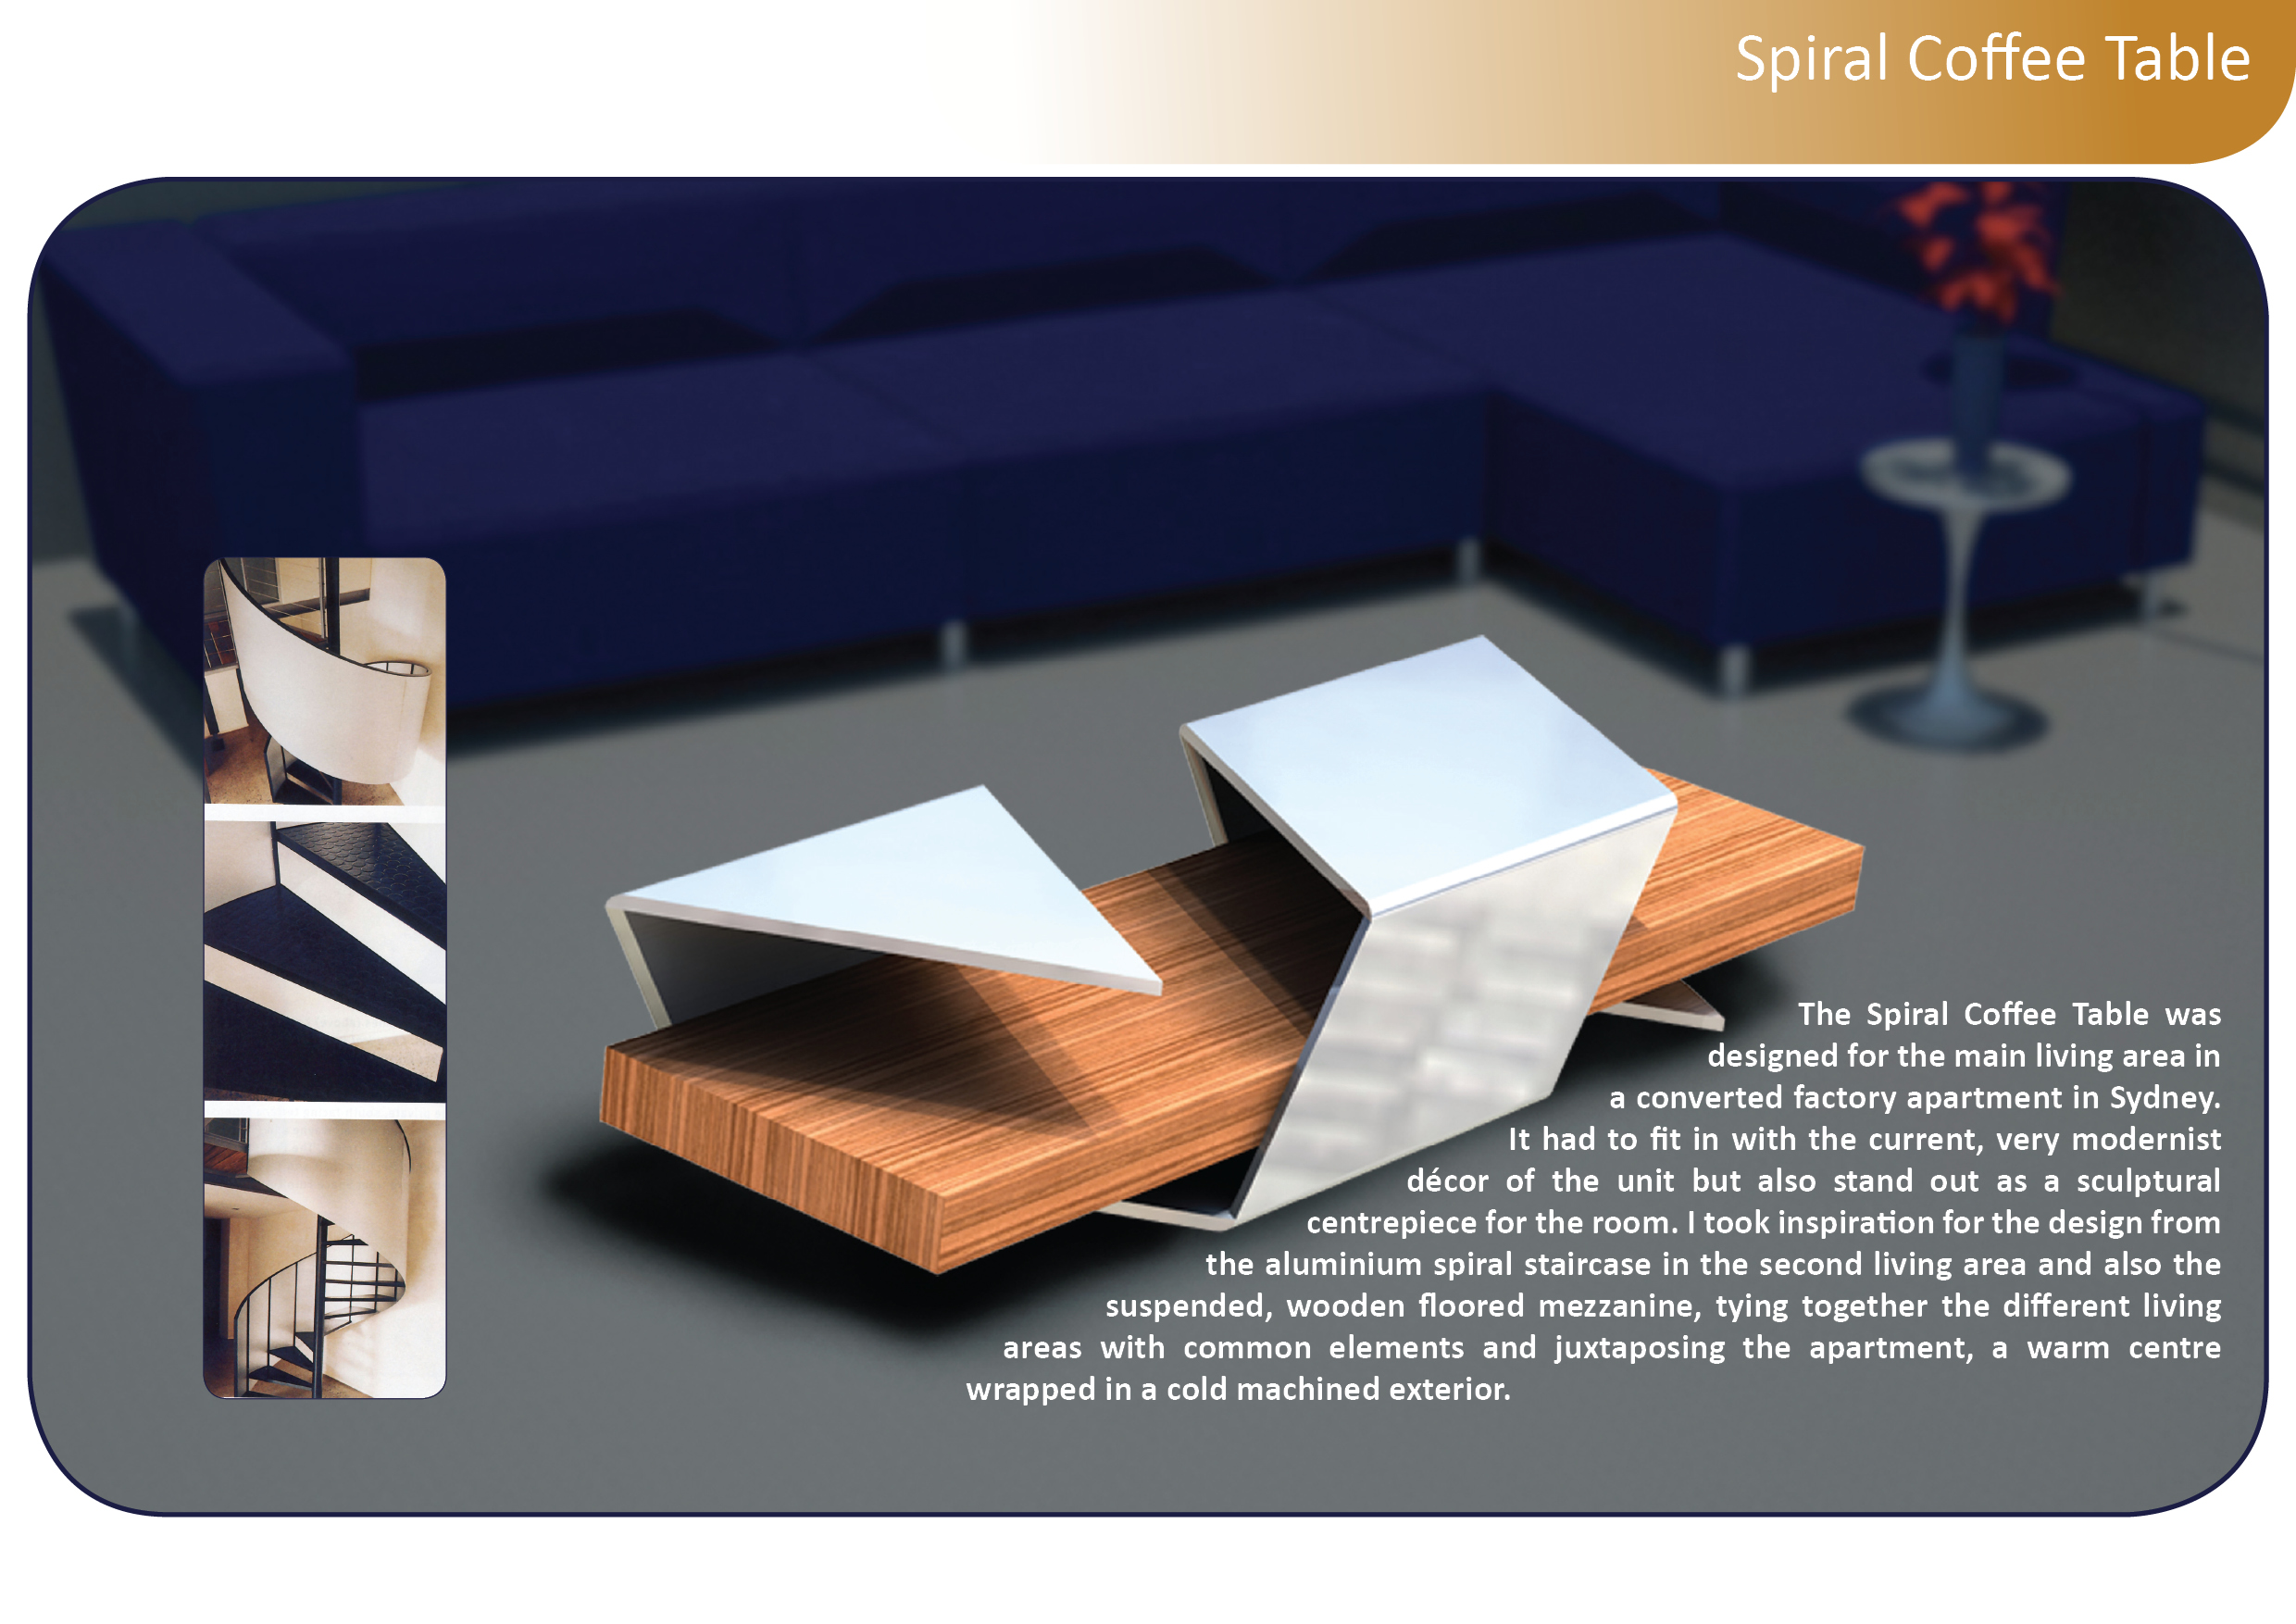 Spiral Coffee Table by Nick Wright at Coroflot.com